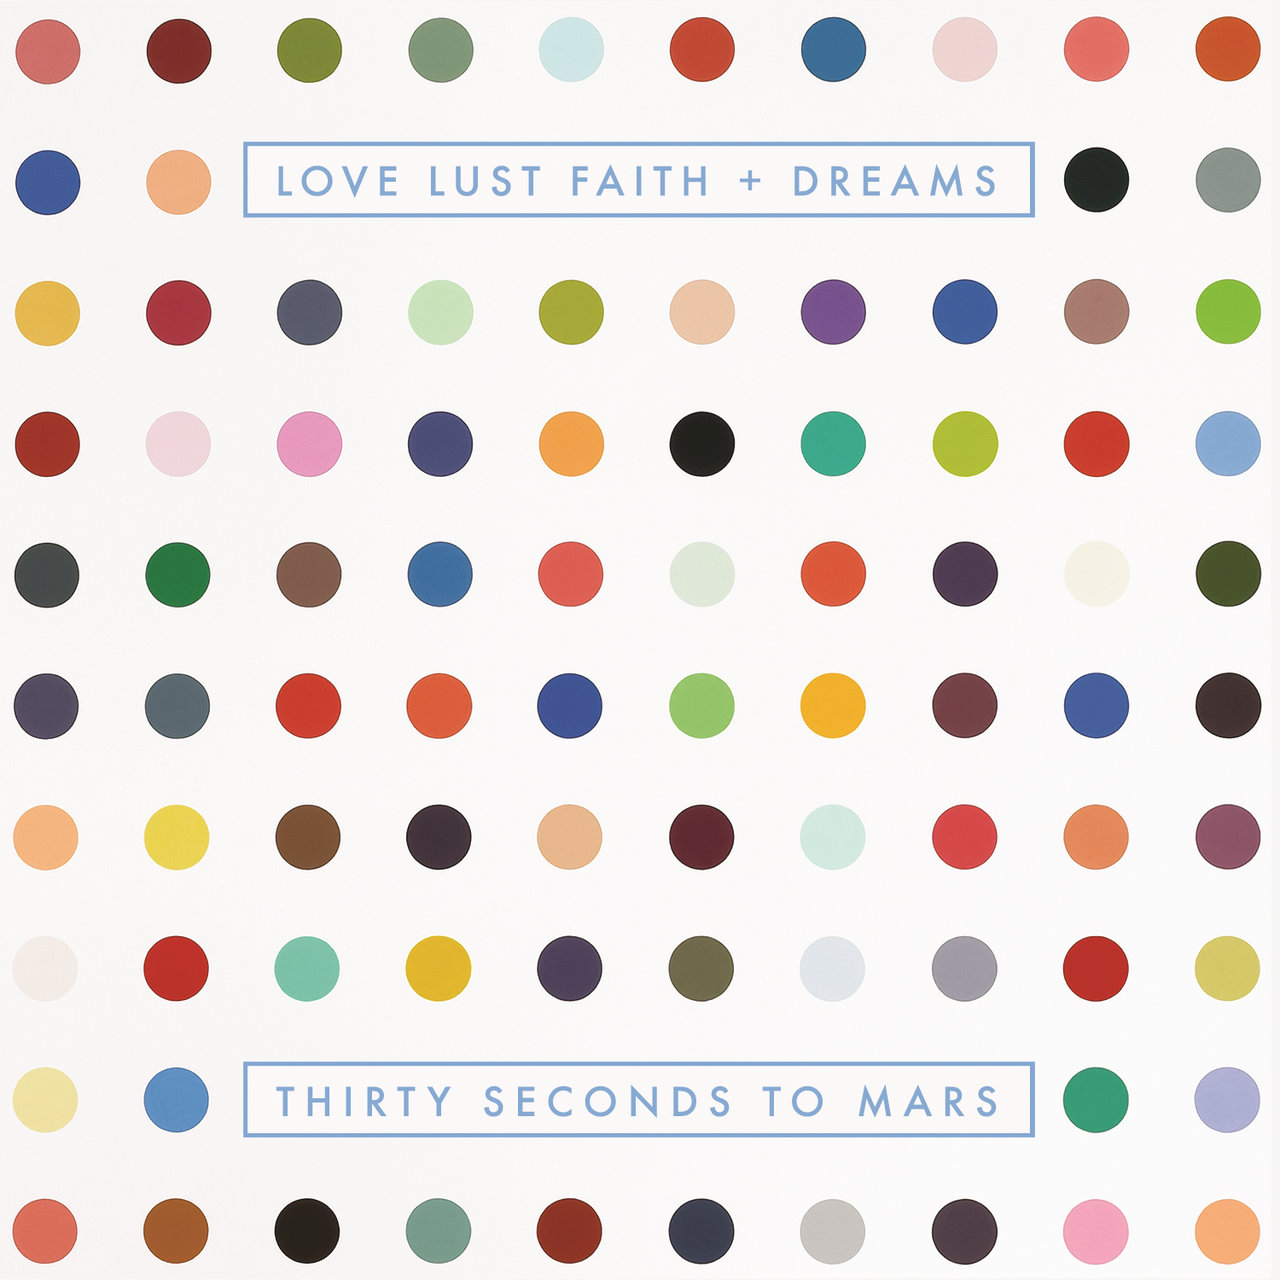 ThirtySecondsToMars_LoveLustFaithDreams.jpg